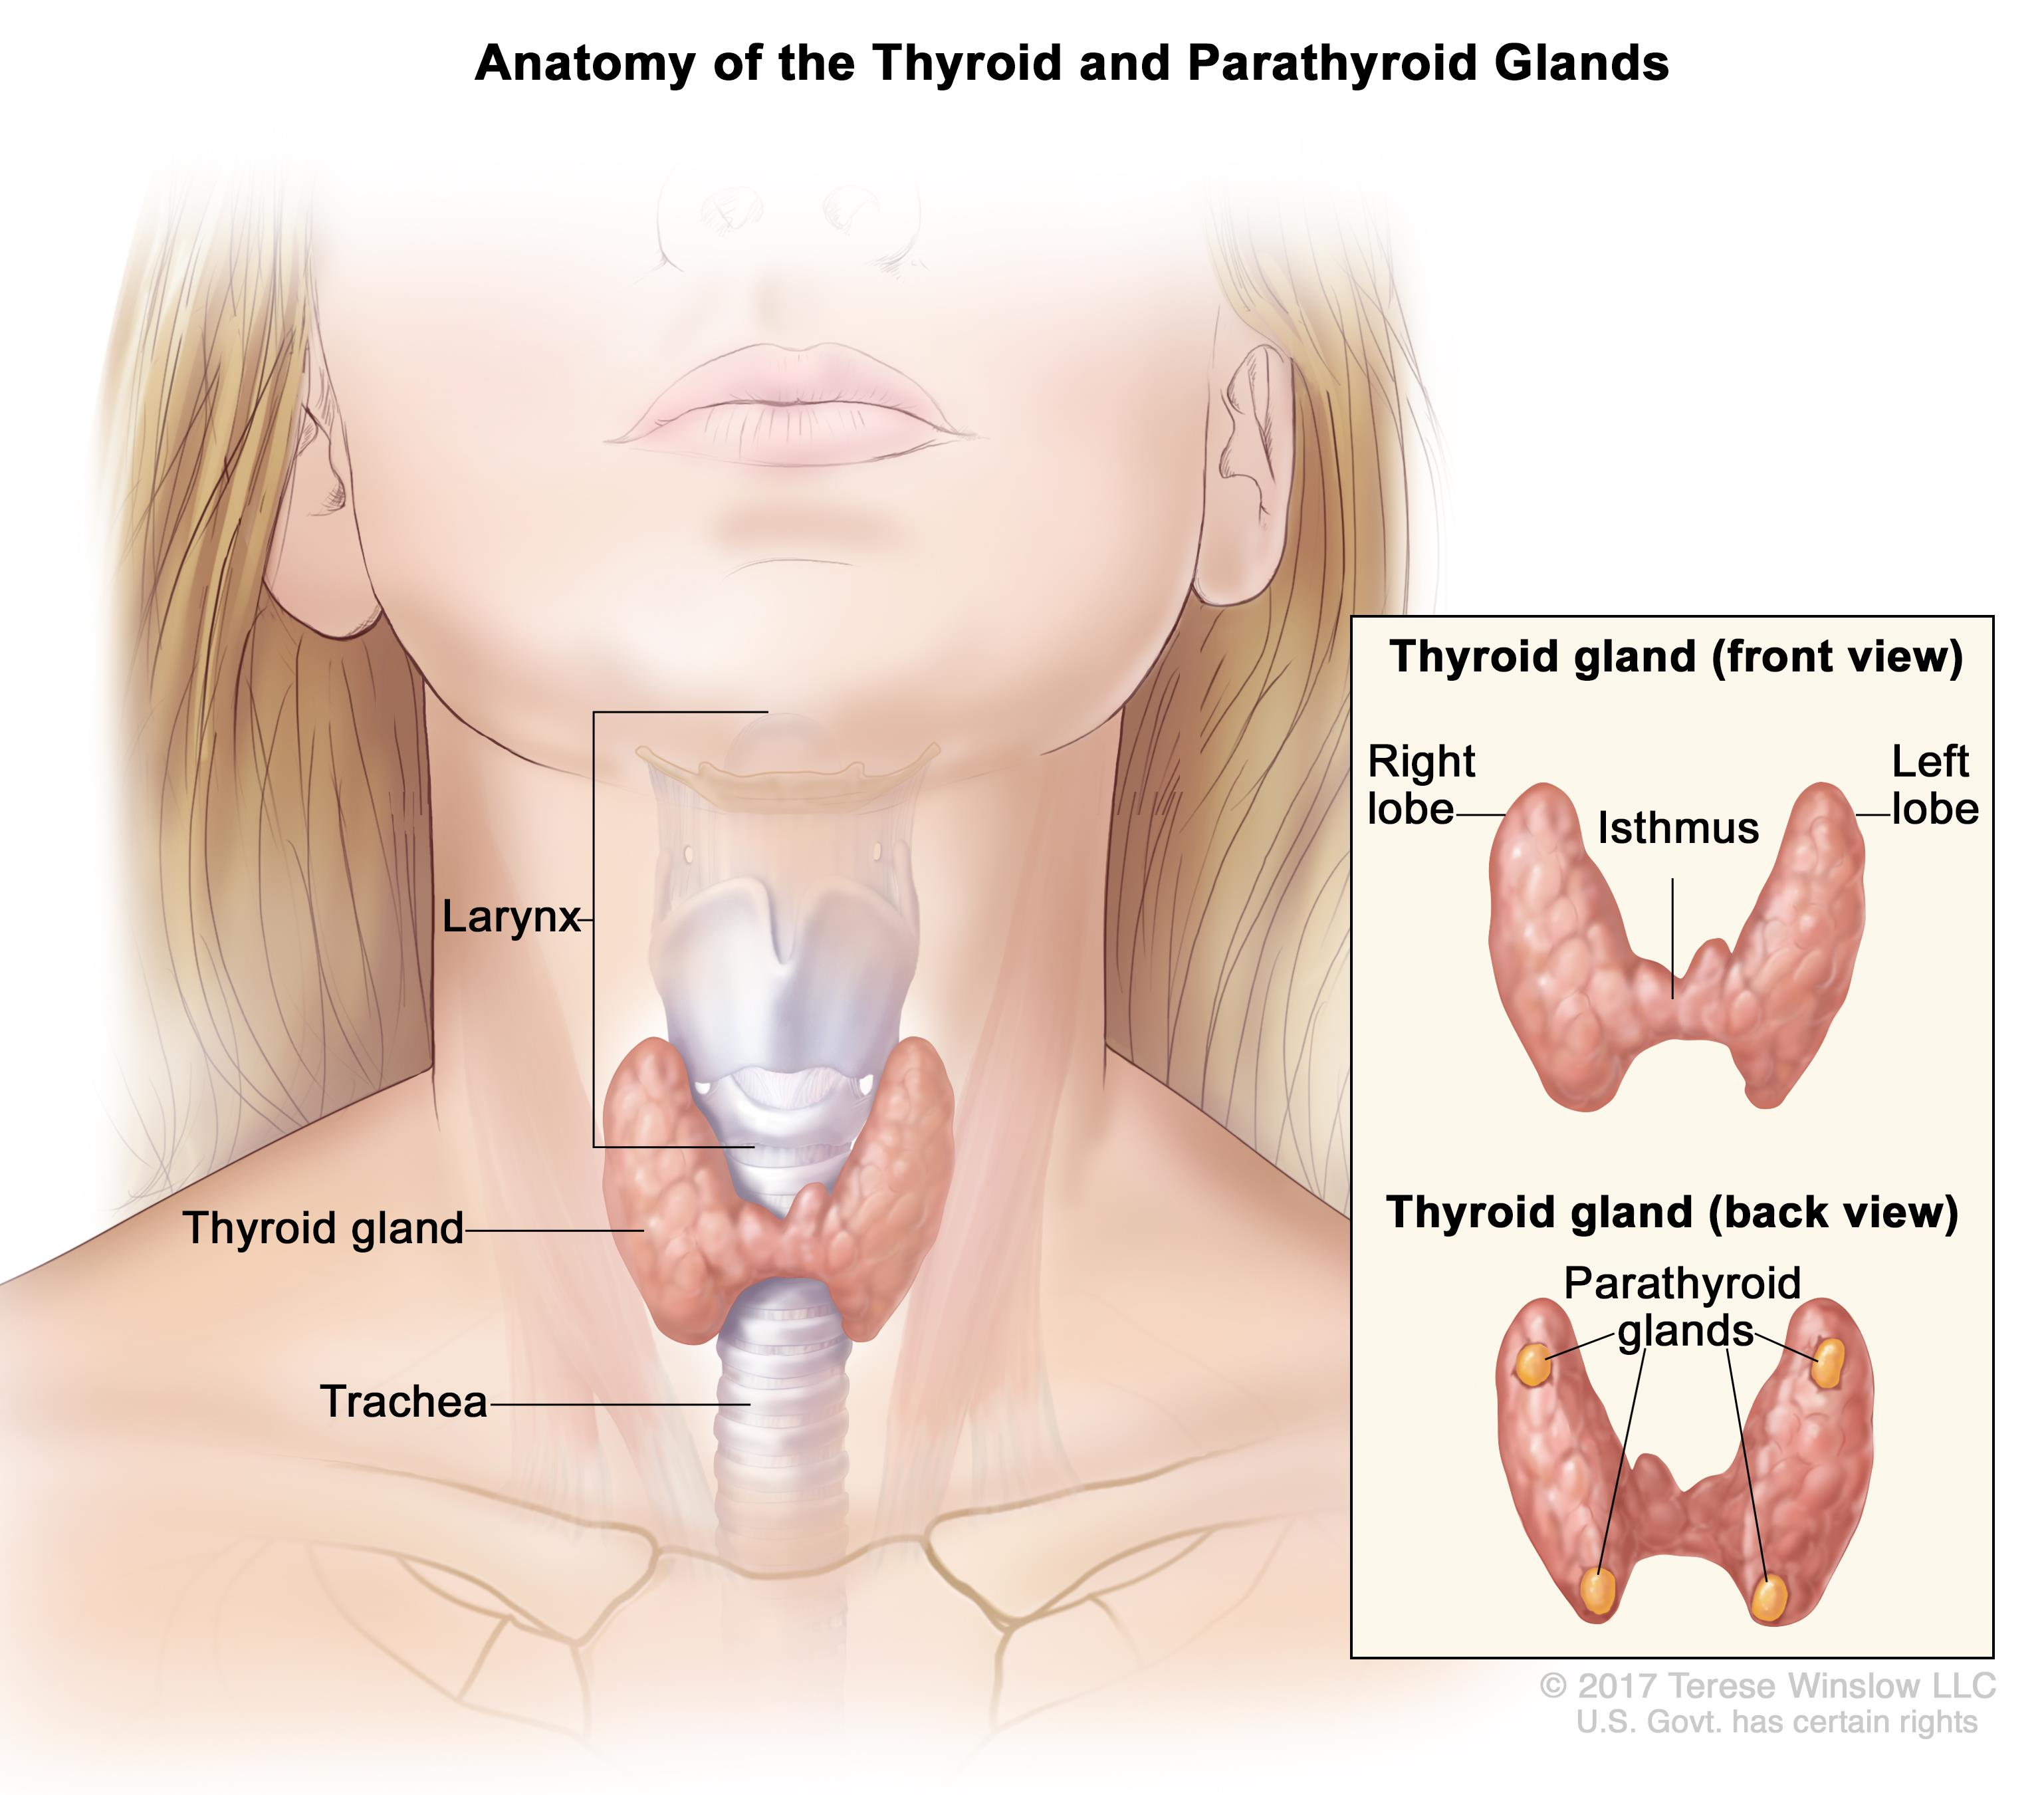 laryngeal papillomatosis medscape genital hpv infection symptoms in females